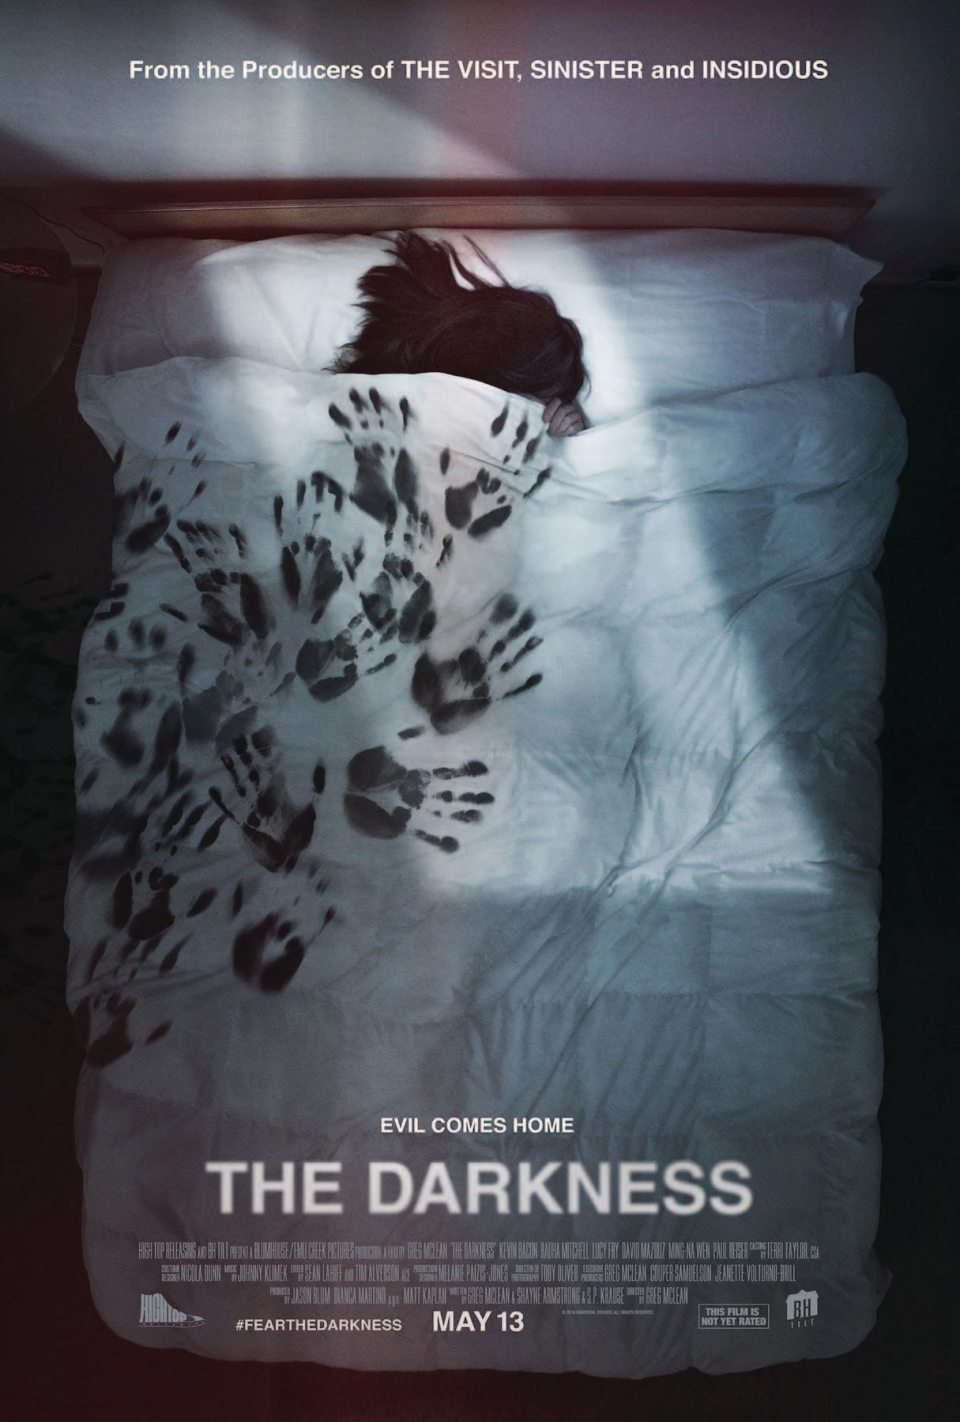 TheDarkness Poster.jpg?zoom=1 - Enter The Darkness Via a Live Digital Séance on Friday